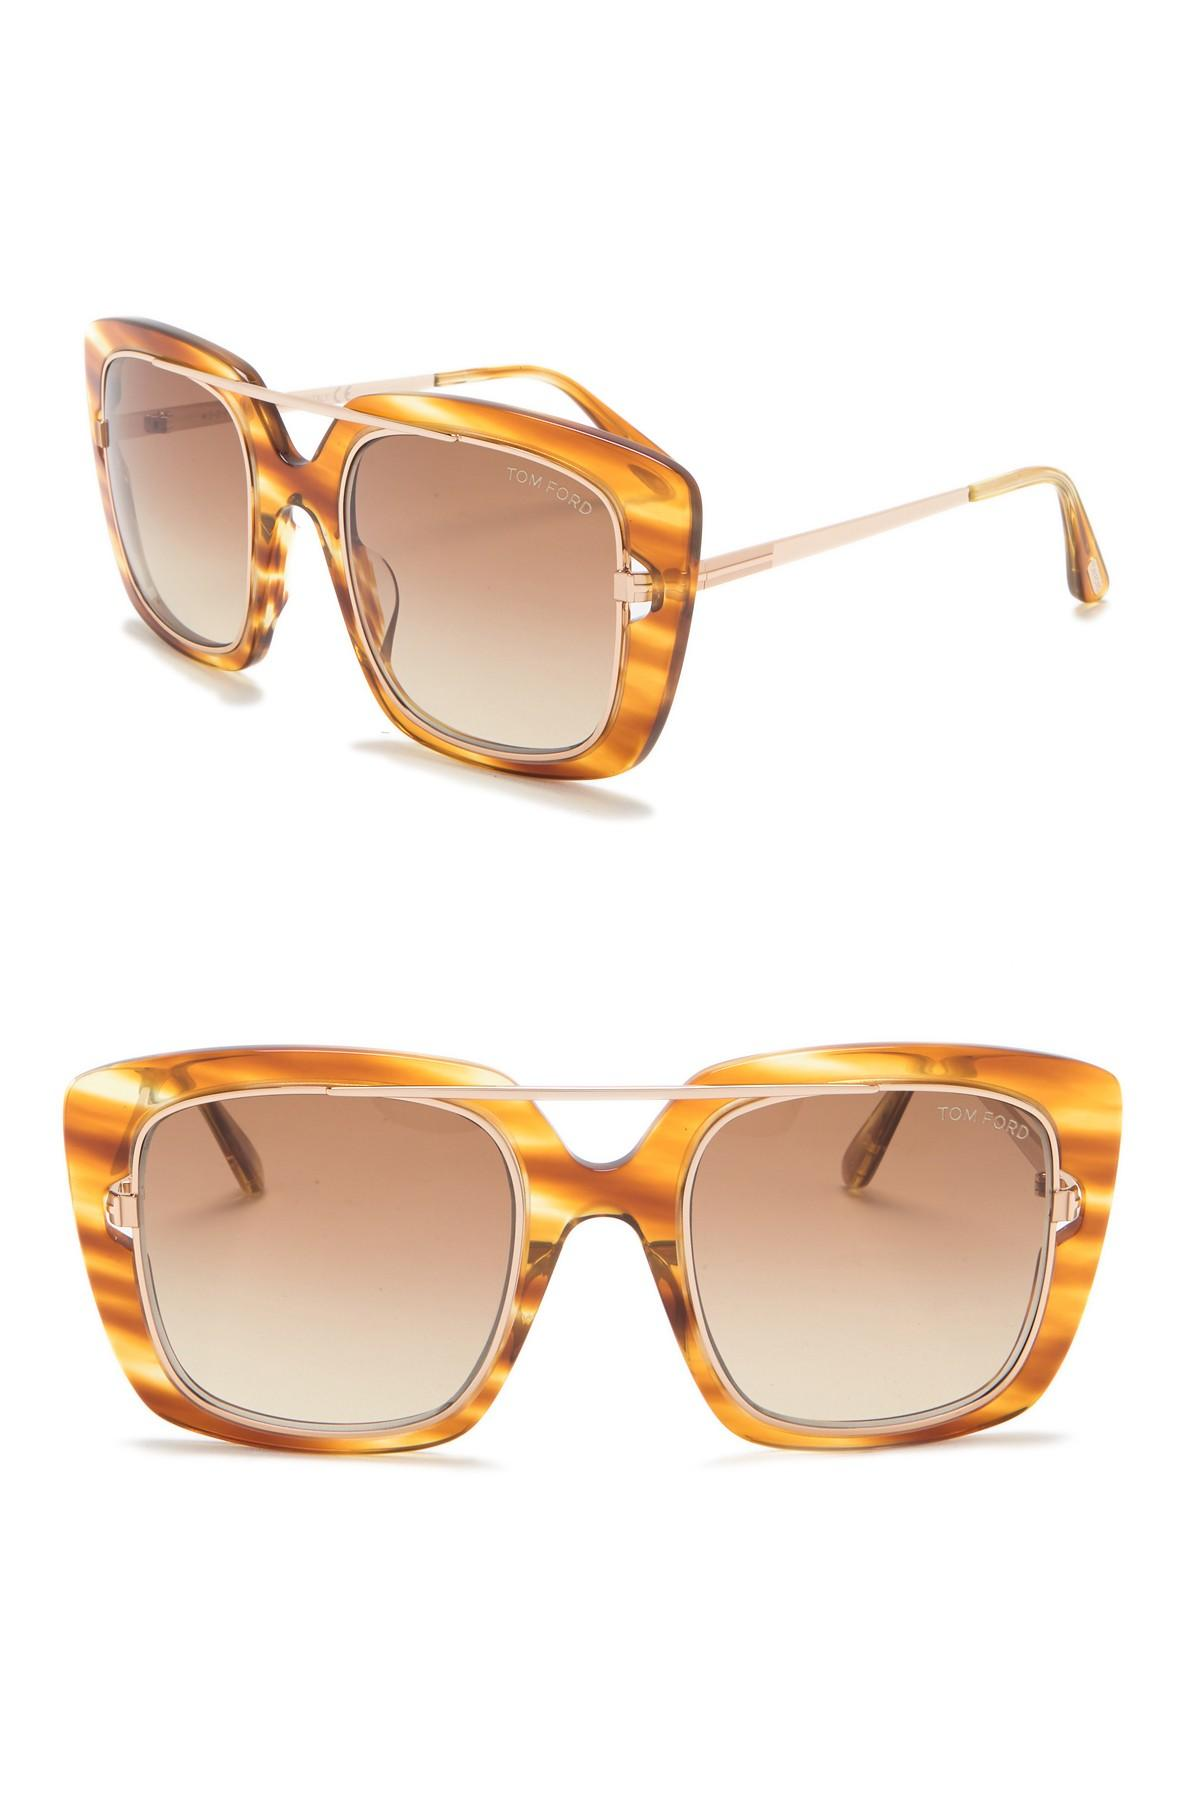 442d35c1839 Tom Ford - Multicolor Marissa 52mm Square Sunglasses - Lyst. View fullscreen